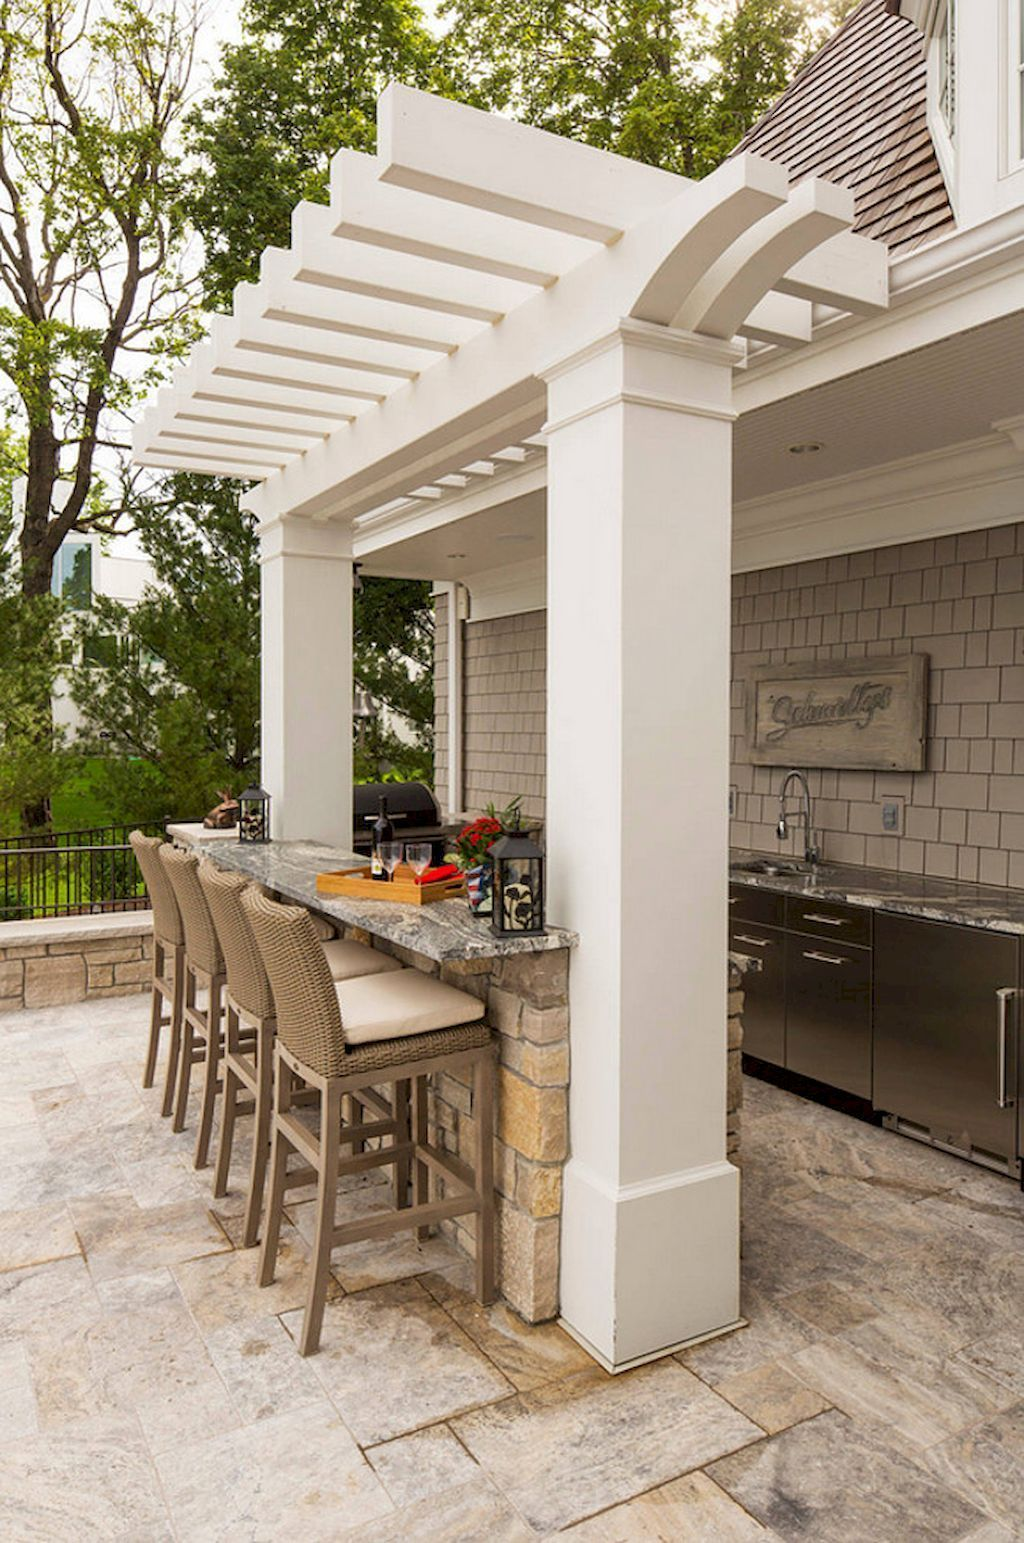 10 Outdoor Kitchen Ideas And Design On A Budget To Experience A Fun Cooking With Images Modern Outdoor Kitchen Backyard Patio Budget Backyard